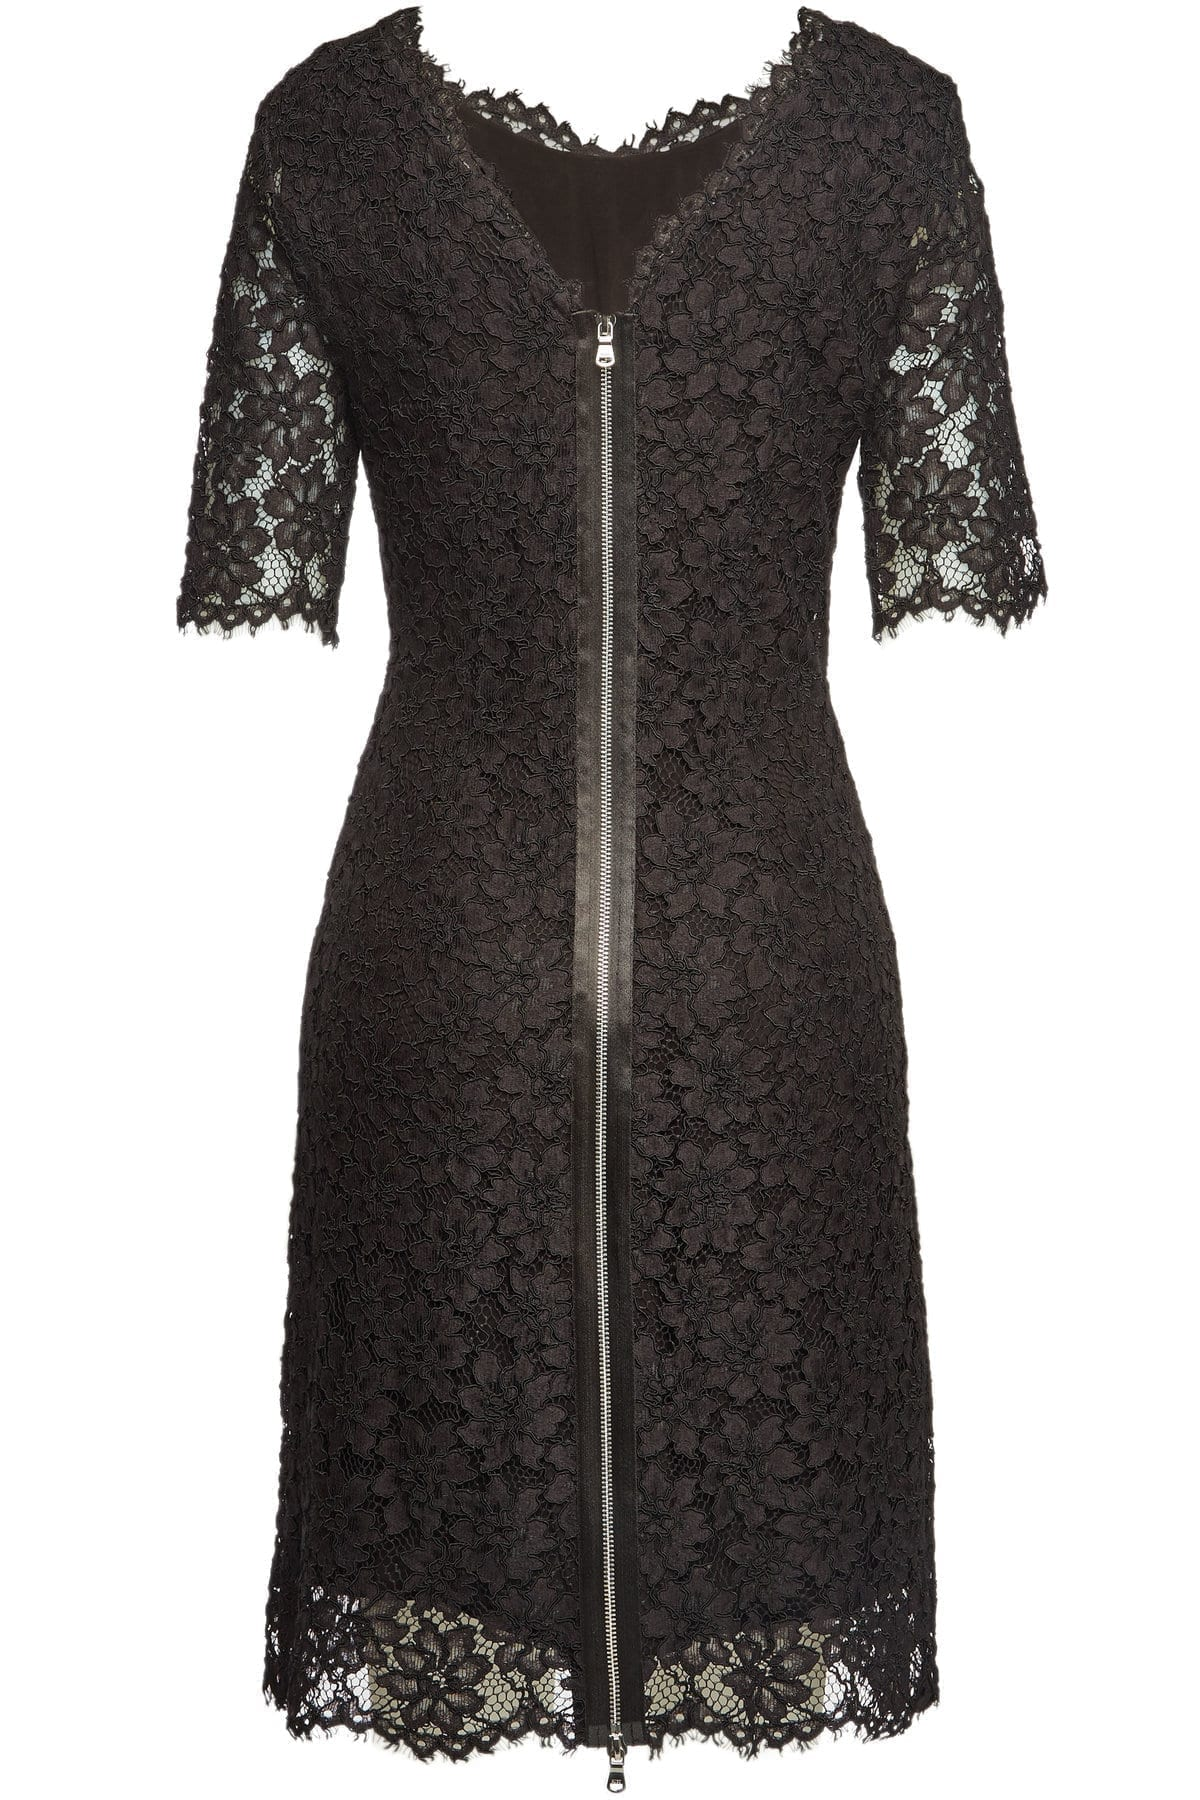 HUGO Kalissy Lace Cotton Black Dress